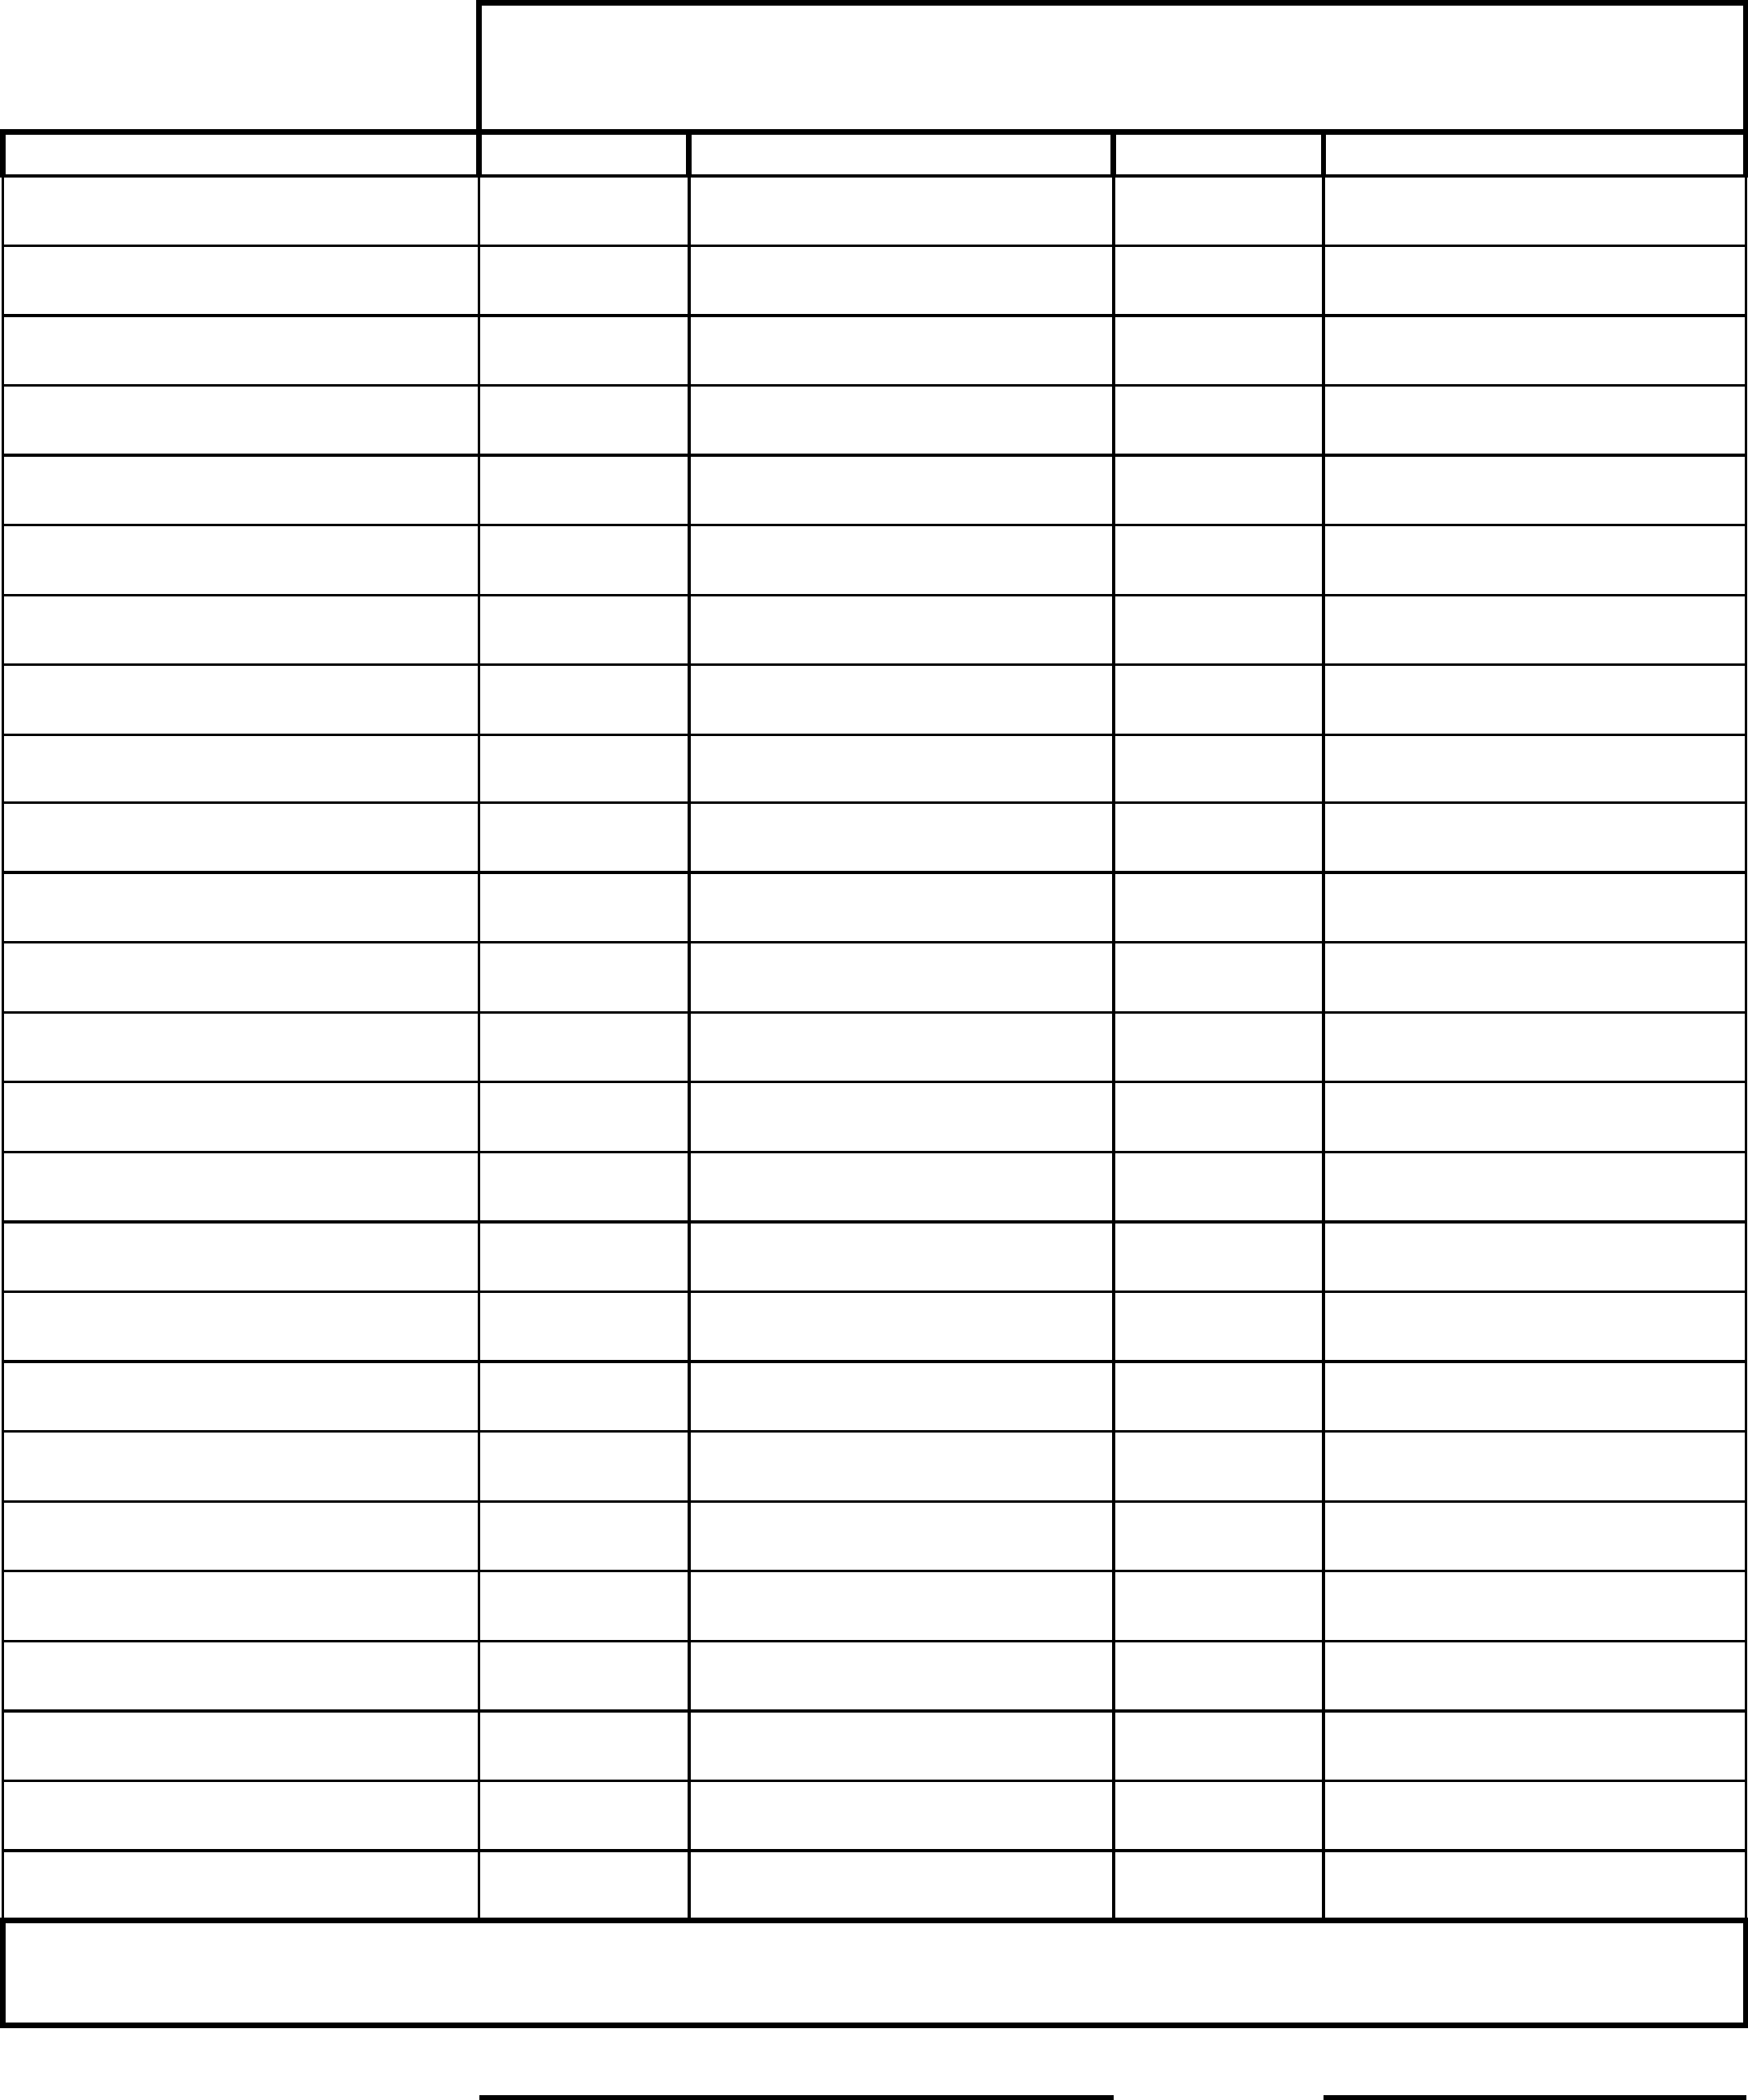 Children Daily Attendance Sheet Free Download intended for Day Care Attendance Sheet Template